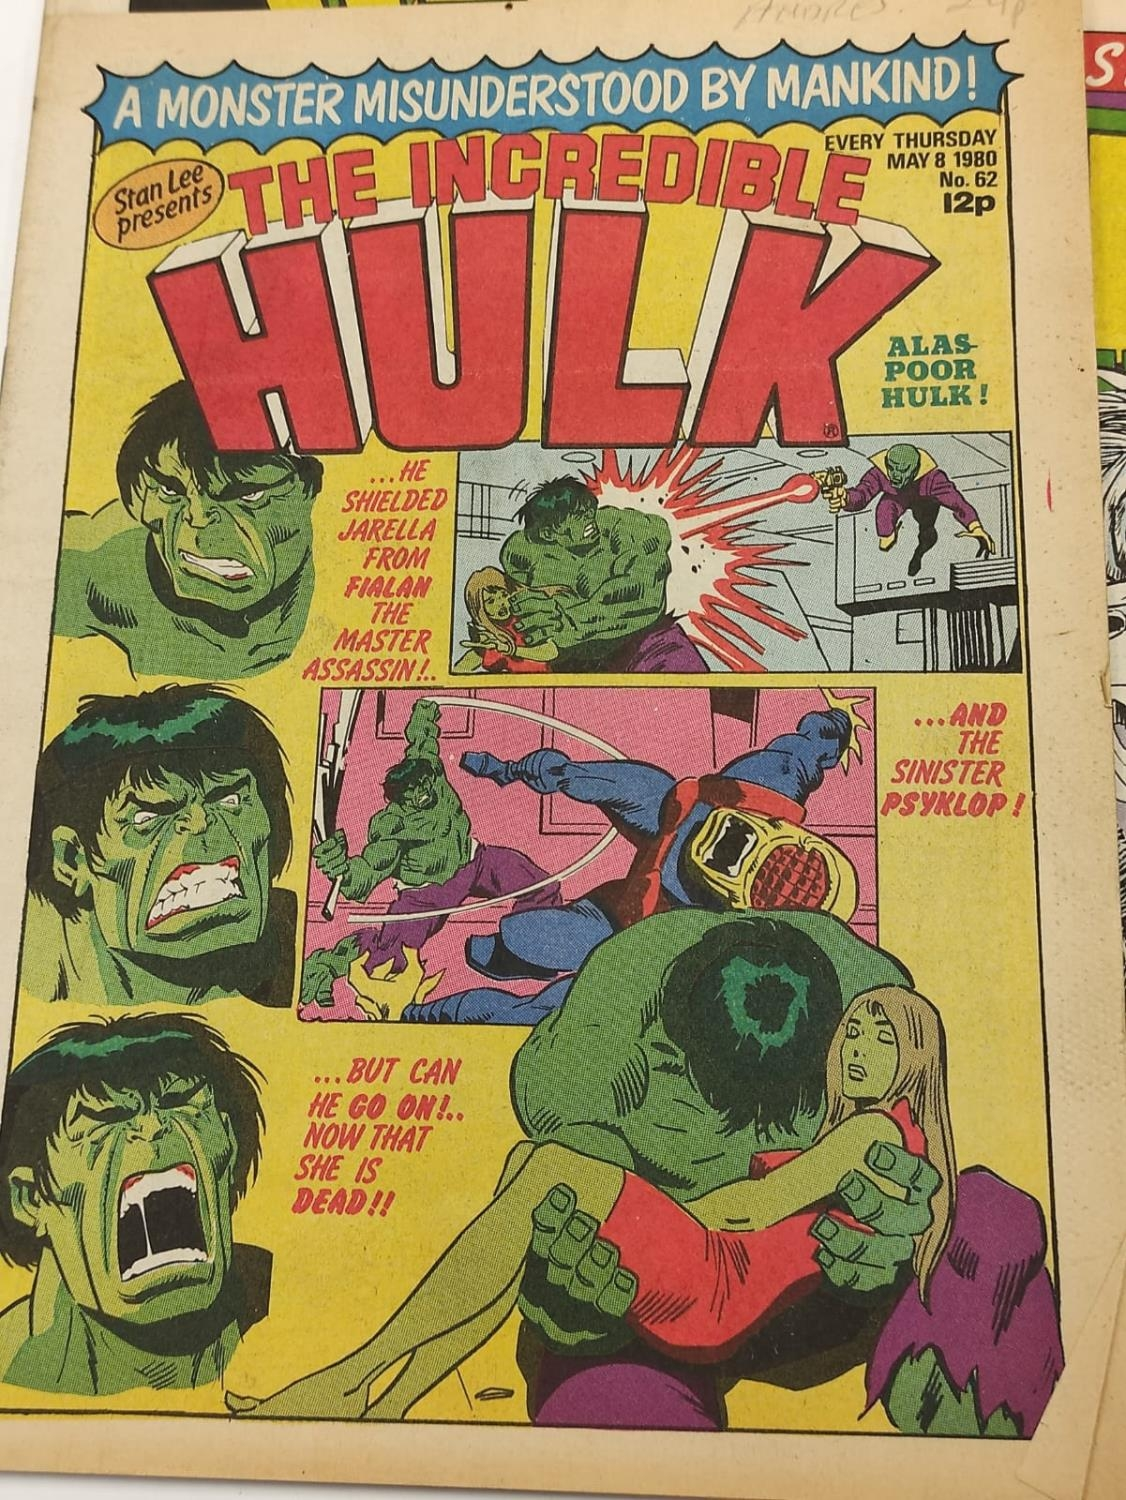 50 editions of Stan Lee Presents, a selection of 1979/1980's comics. - Image 16 of 71